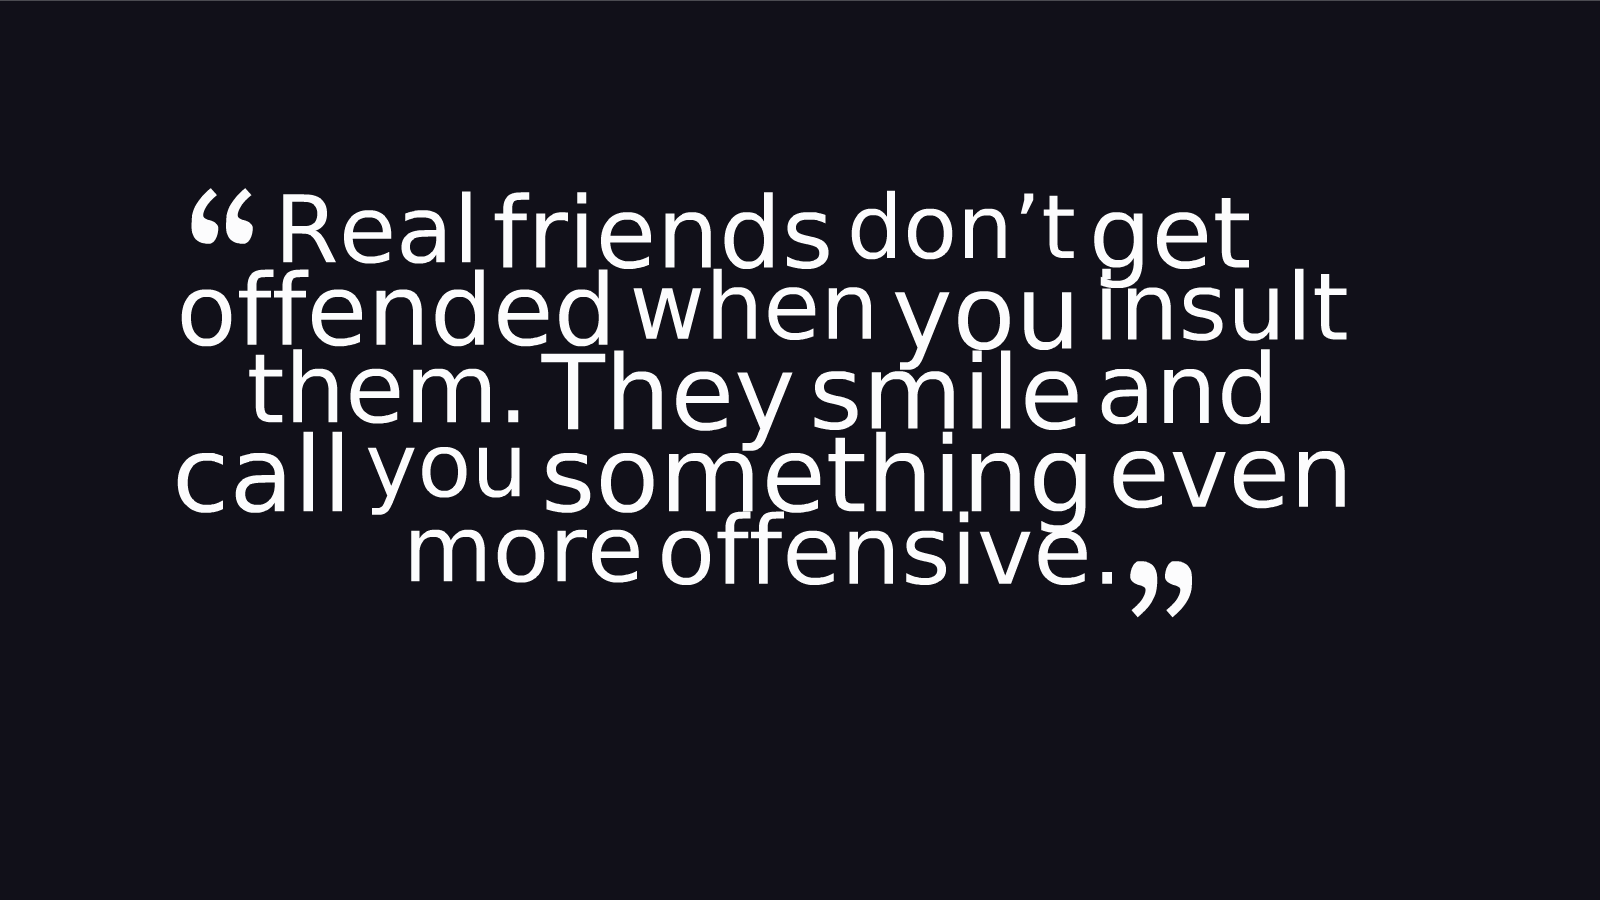 Quotes And Images About Friendship 25 Best Friendship Quotes  Ohtopten